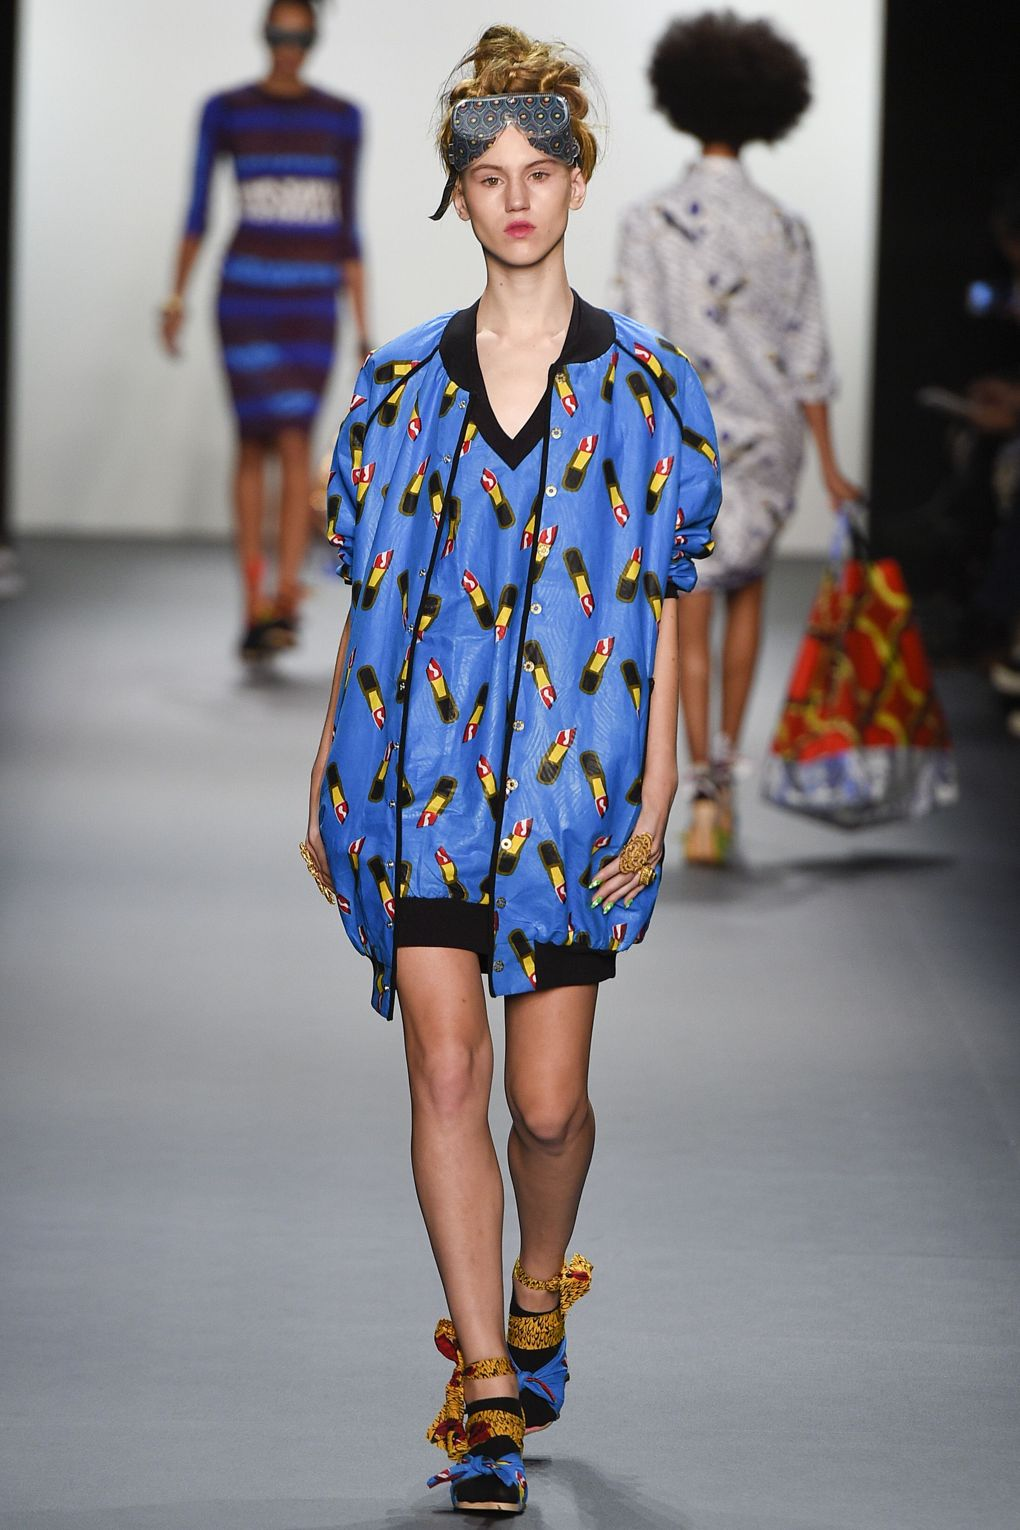 fashion-week-xuly-be%cc%88t-xuly-be%cc%88t-sprigsummer-2016-ready-to-wear-collection-14